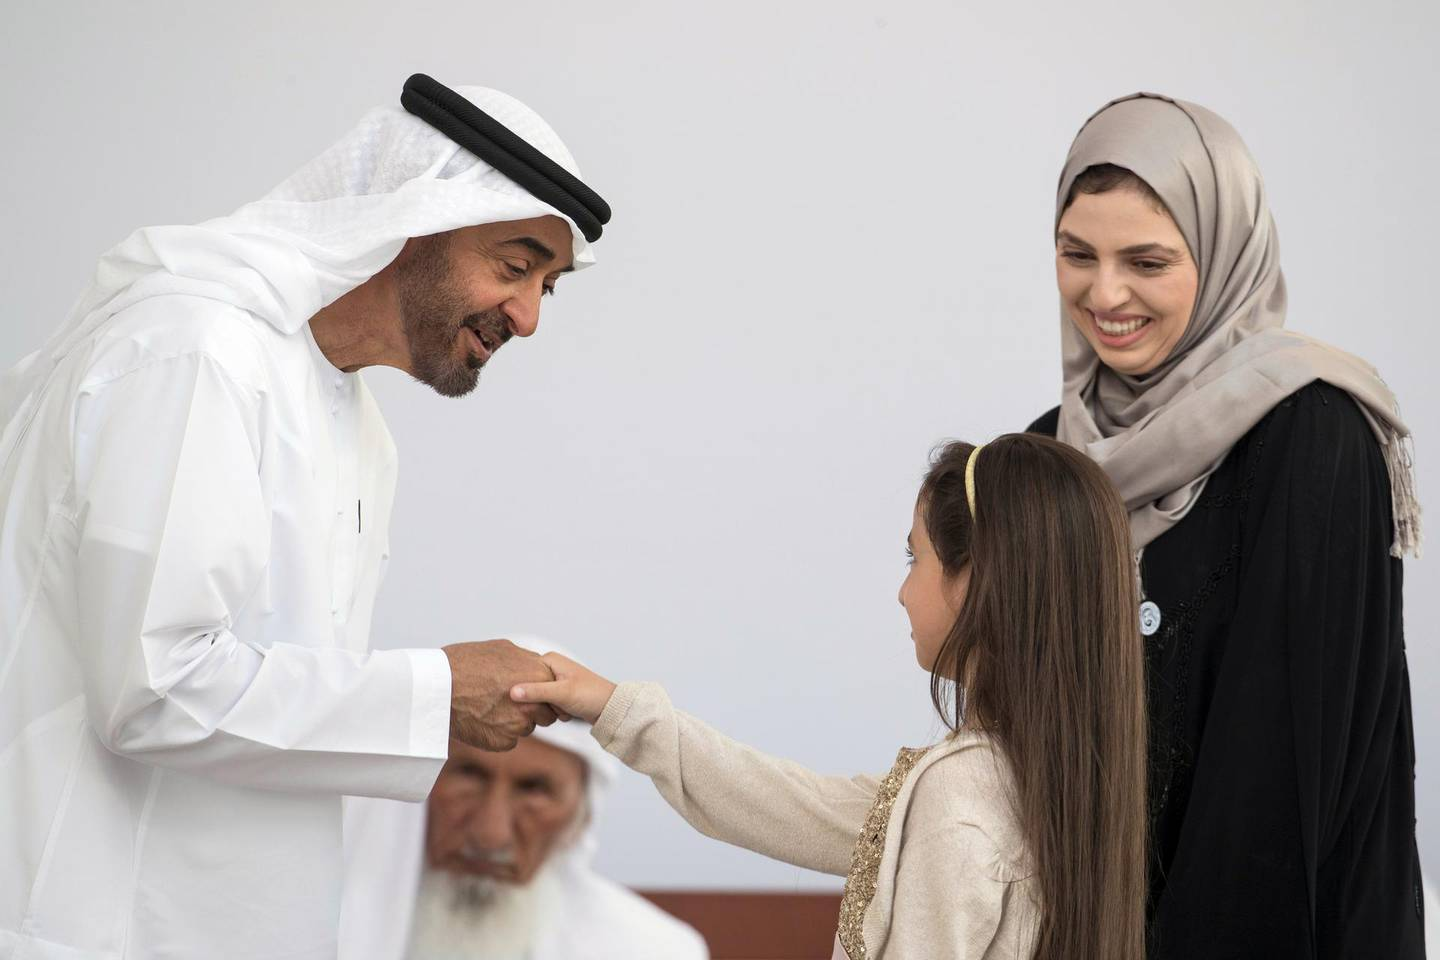 ABU DHABI, UNITED ARAB EMIRATES -  March 12, 2018: HH Sheikh Mohamed bin Zayed Al Nahyan, Crown Prince of Abu Dhabi and Deputy Supreme Commander of the UAE Armed Forces (L), presents an Abu Dhabi Award to Layan Al Zoebie (C) and Dr Lama Al Zoebie (R), who are receiving the award on behalf of their late father, Dr Azzam Al Zoebie (not shown) during the awards ceremony at the Sea Palace. ( Ryan Carter for the Crown Prince Court - Abu Dhabi ) ---